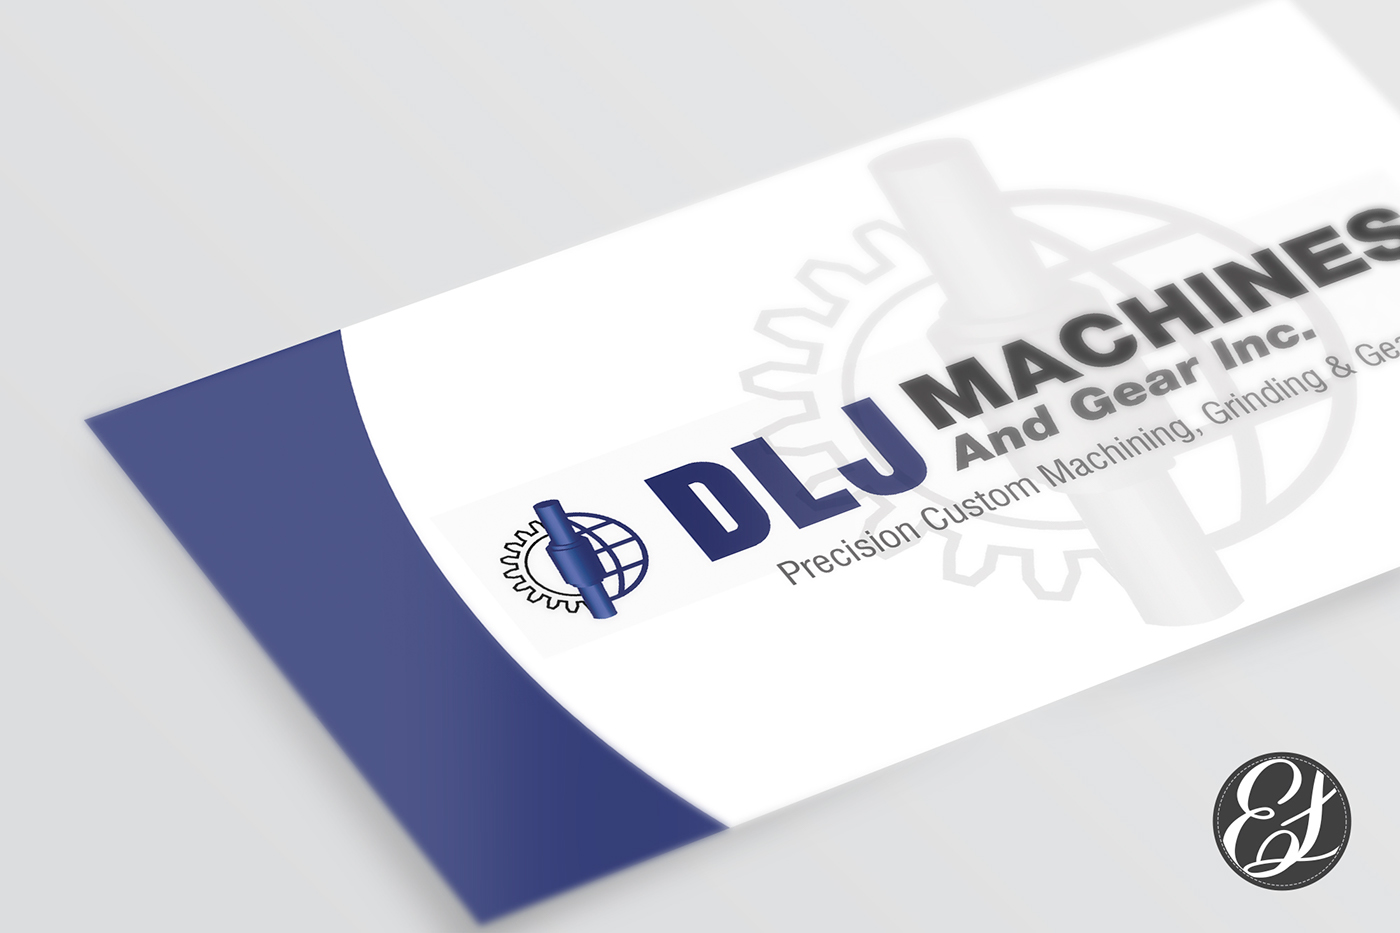 DLJ Machines and Gear Company Business Card Design on Behance